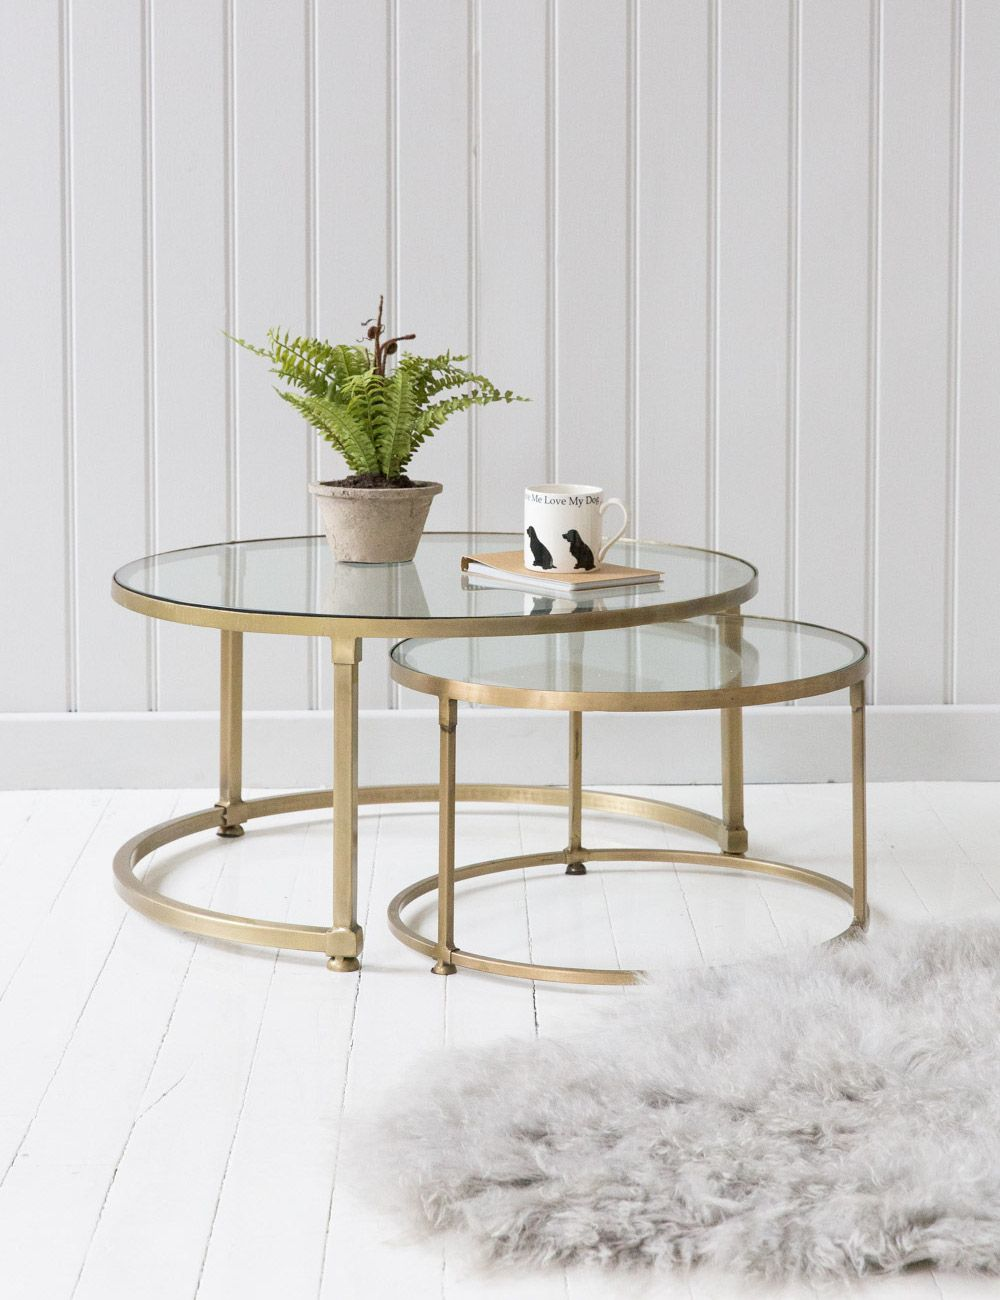 Coco Nesting Round Glass Coffee Tables | Pinterest | Round glass ...